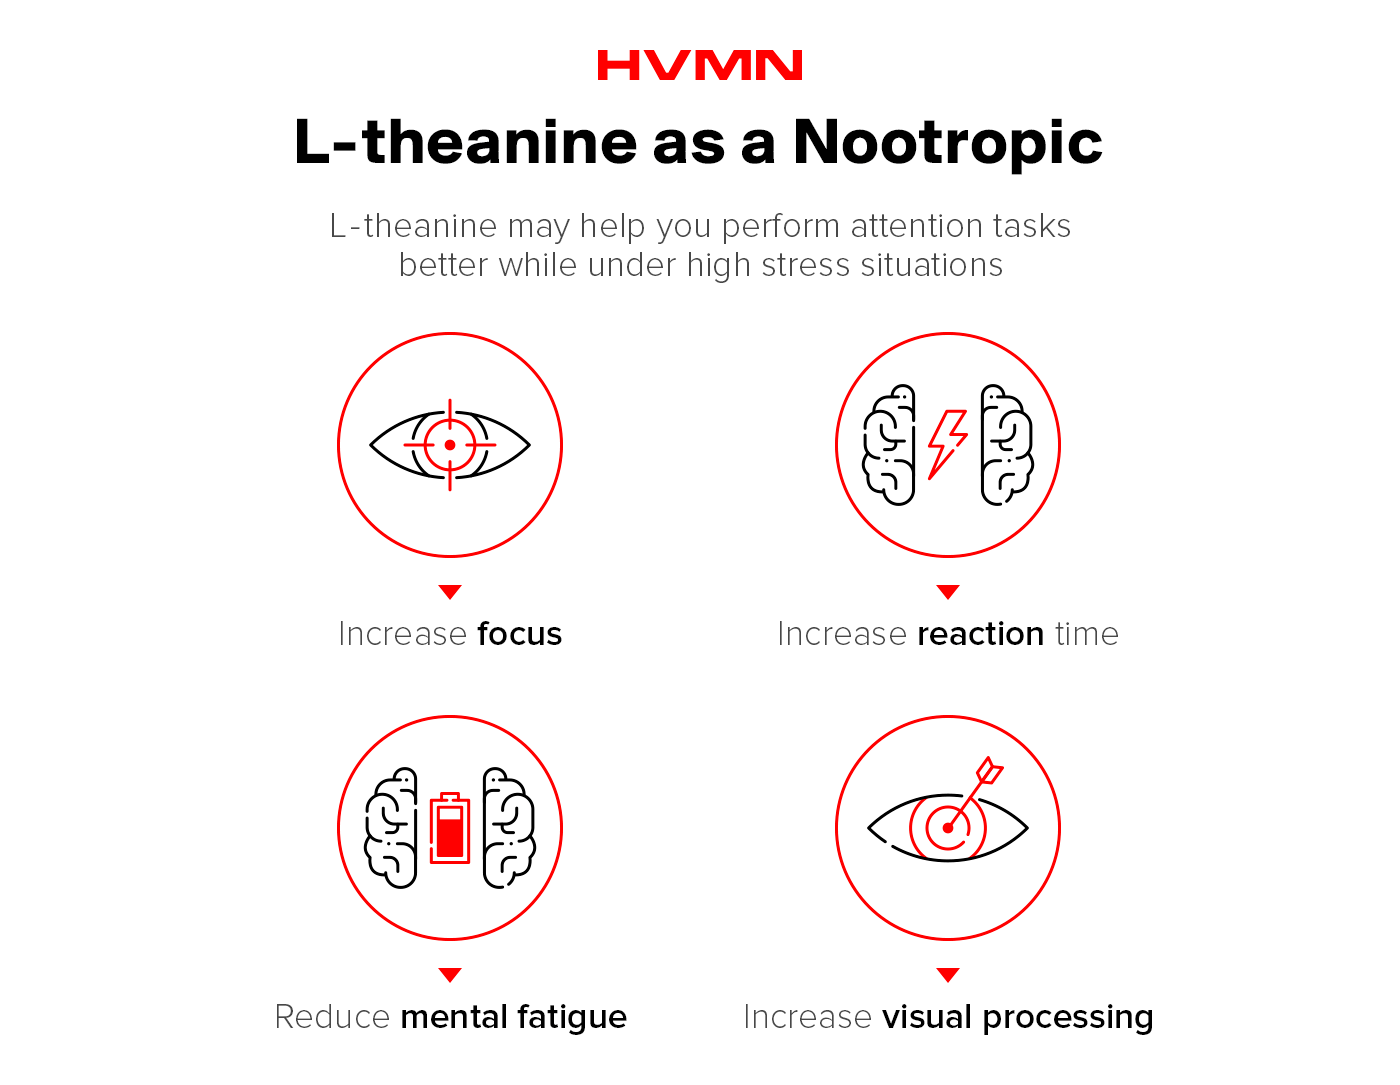 Four icons showing how l-theanine works as a nootropic: an eye, a brain with a lightning bolt, a brain with a battery, and an eye with an arrow.